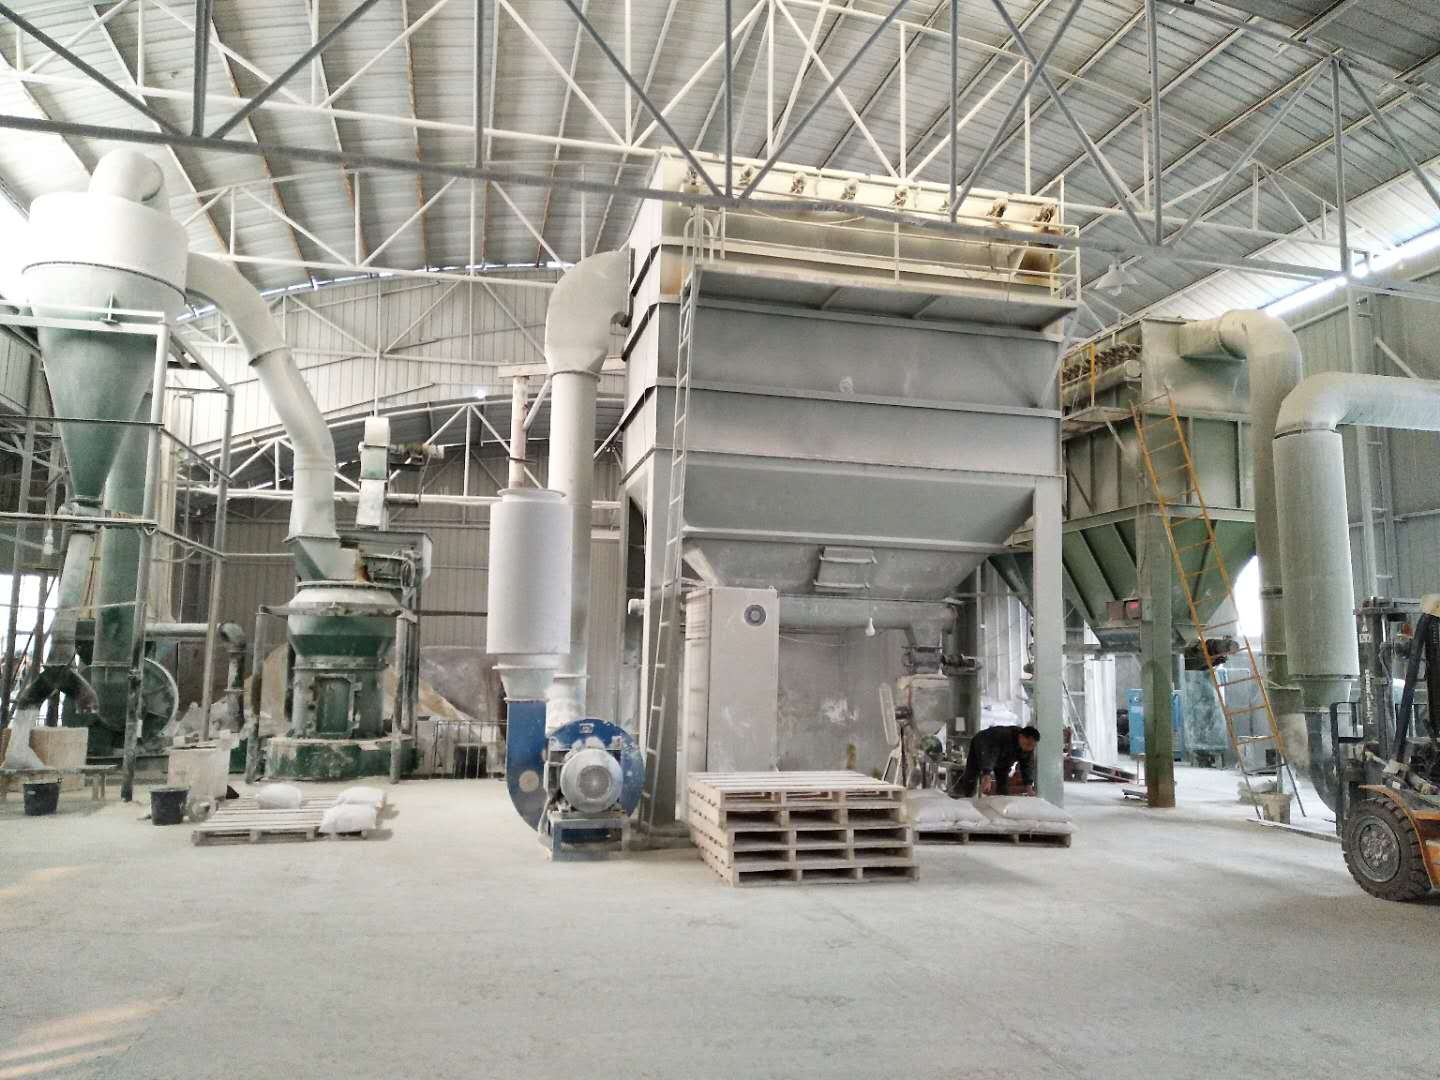 Barite grinding plant-9X Minerals